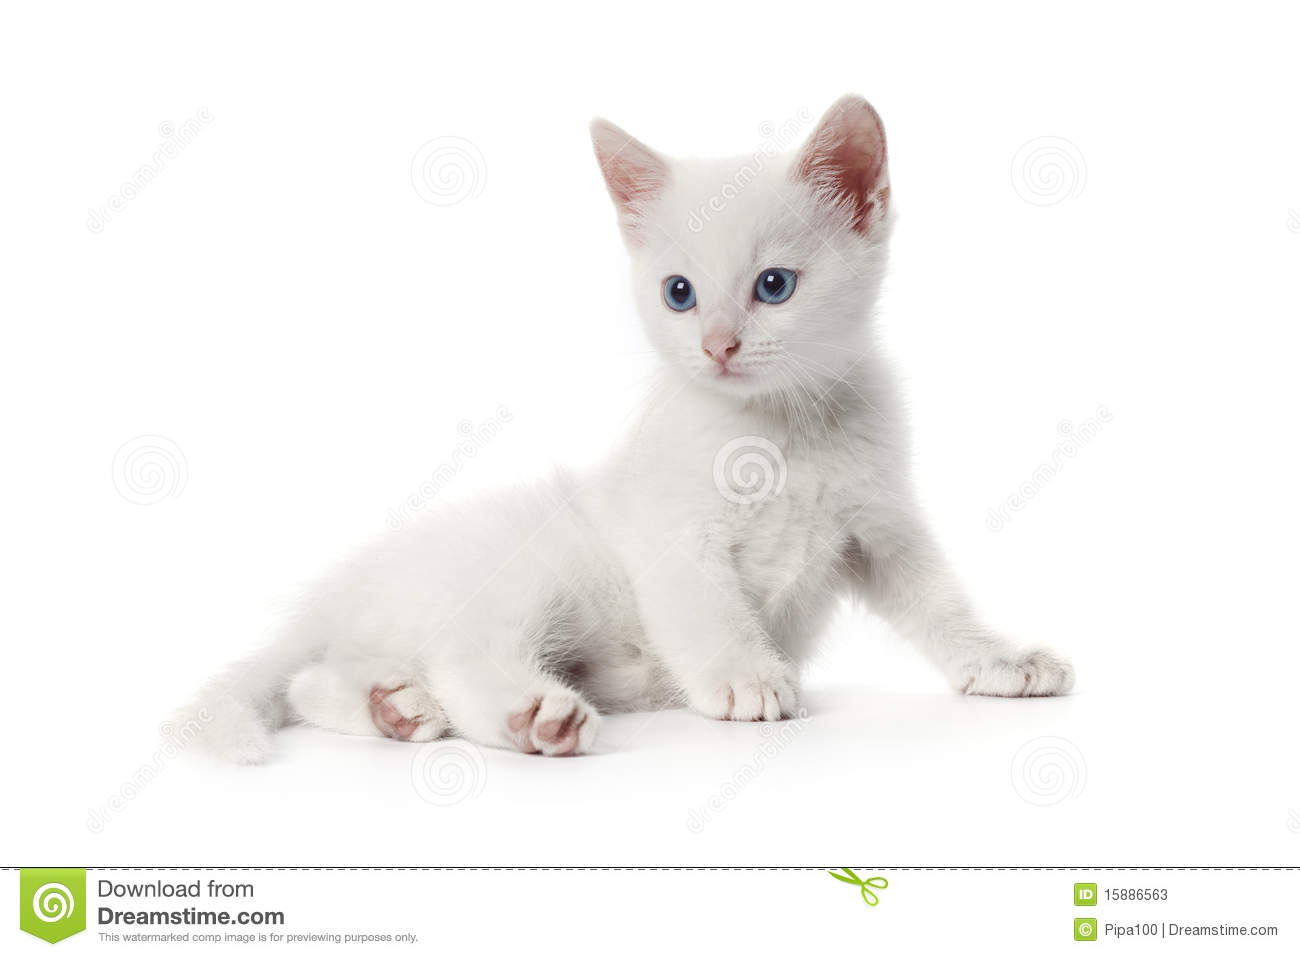 Green Animal Print Wallpaper Cute White Kitten With Blue Eyes Stock Image Image 15886563